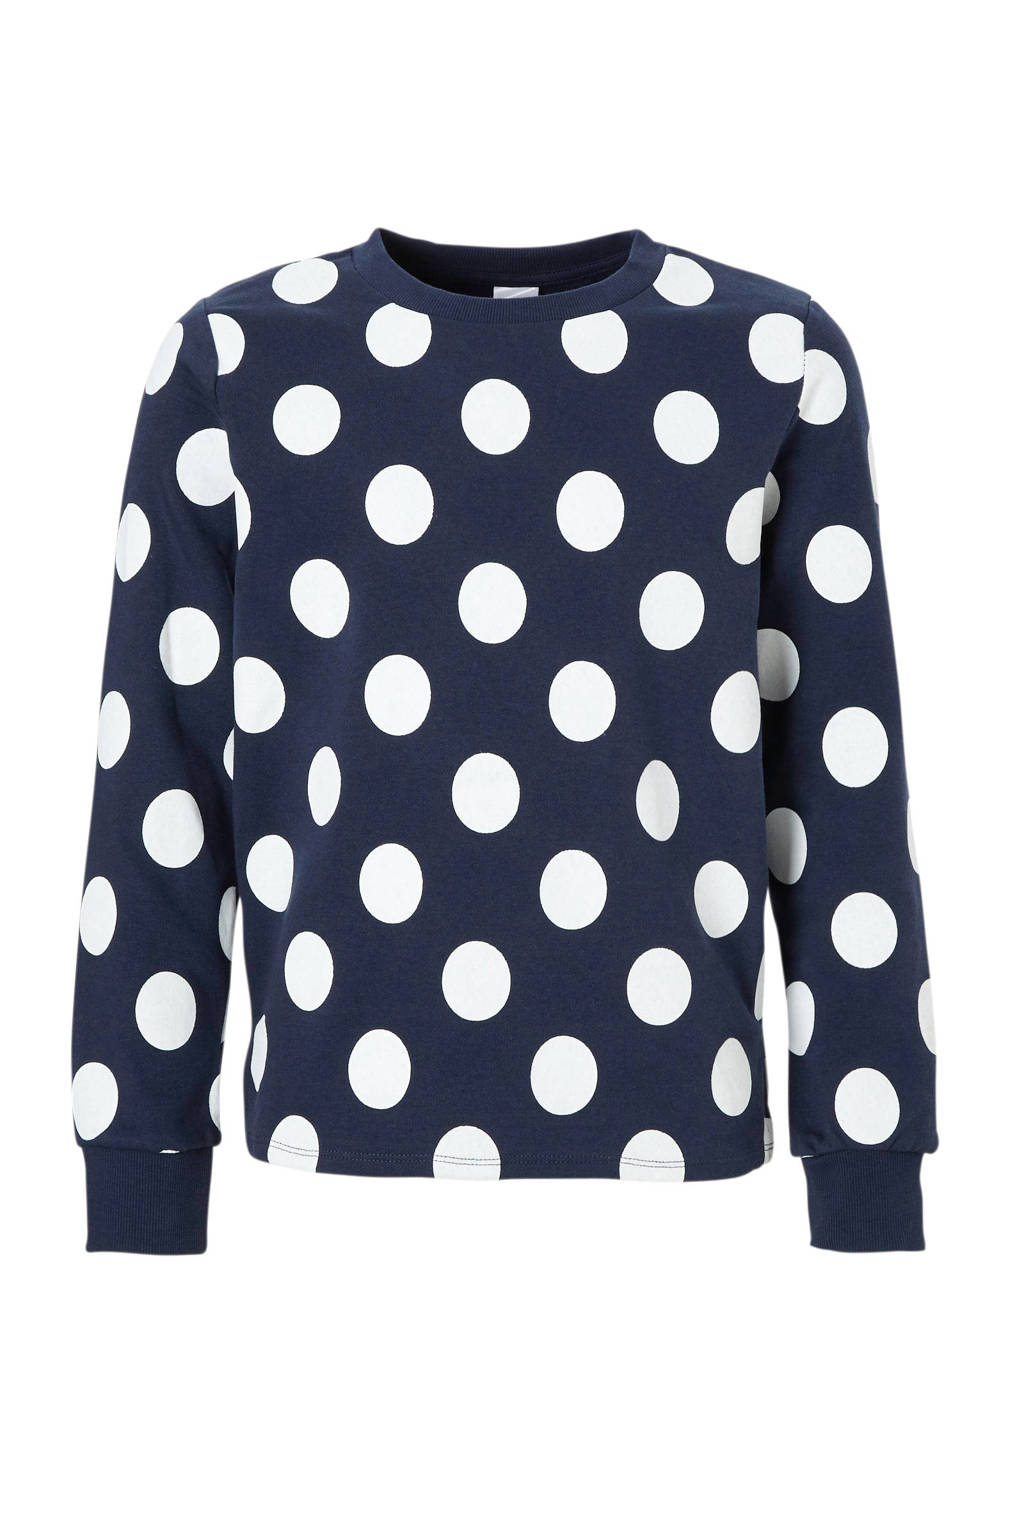 C&A Here & There sweater met stippen blauw, Blauw/wit